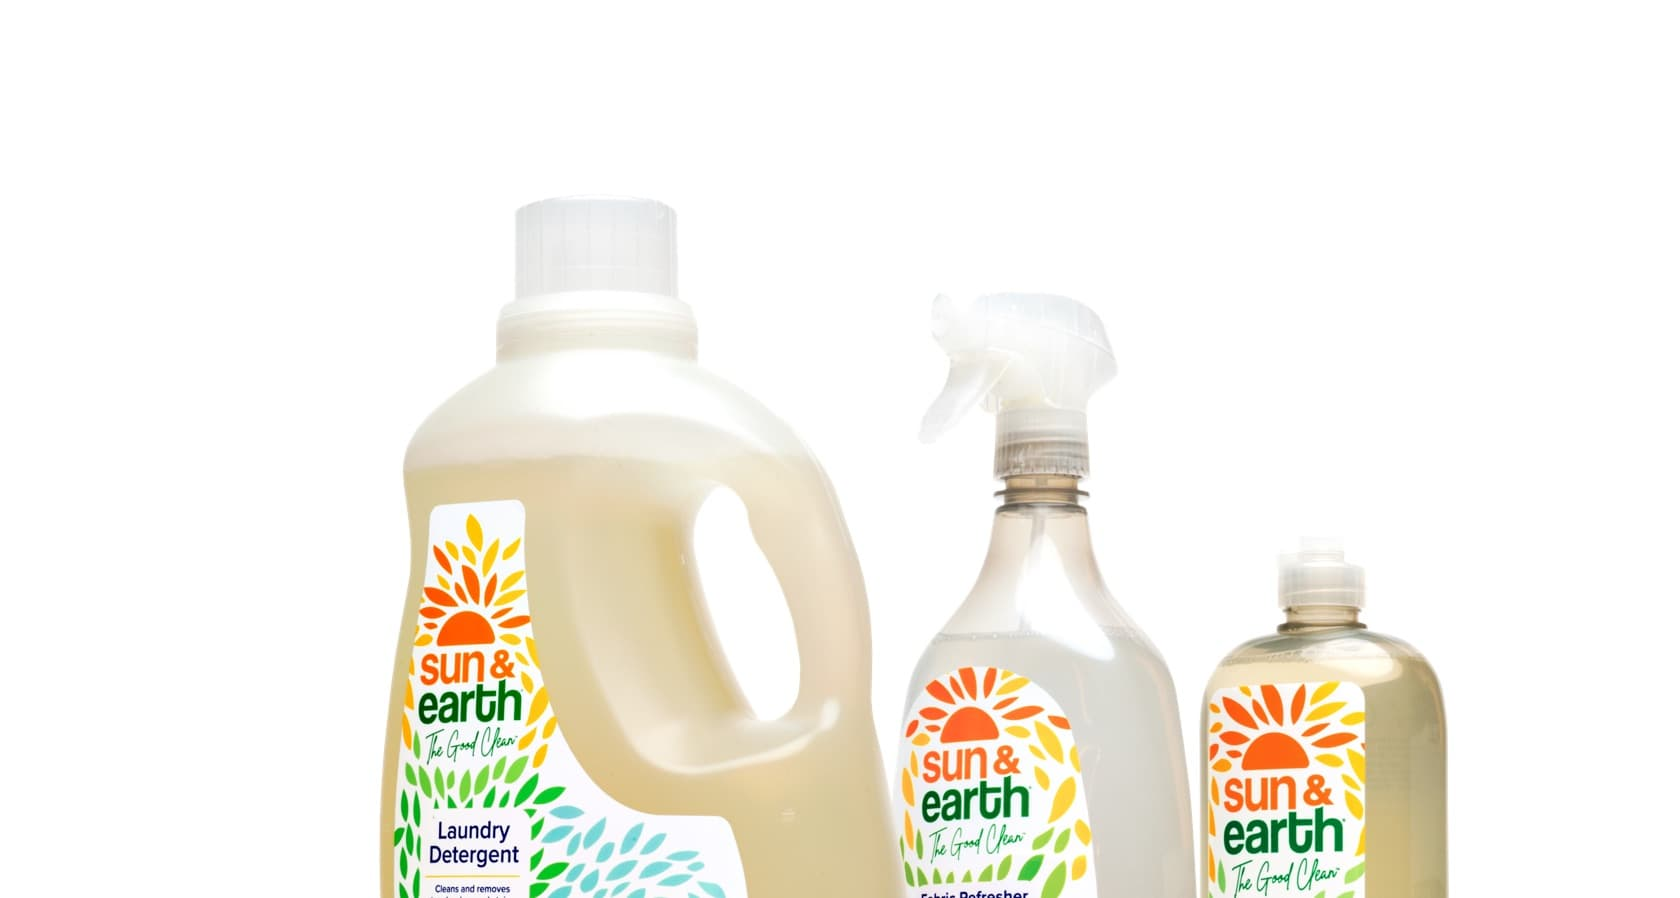 sun and earth product line up